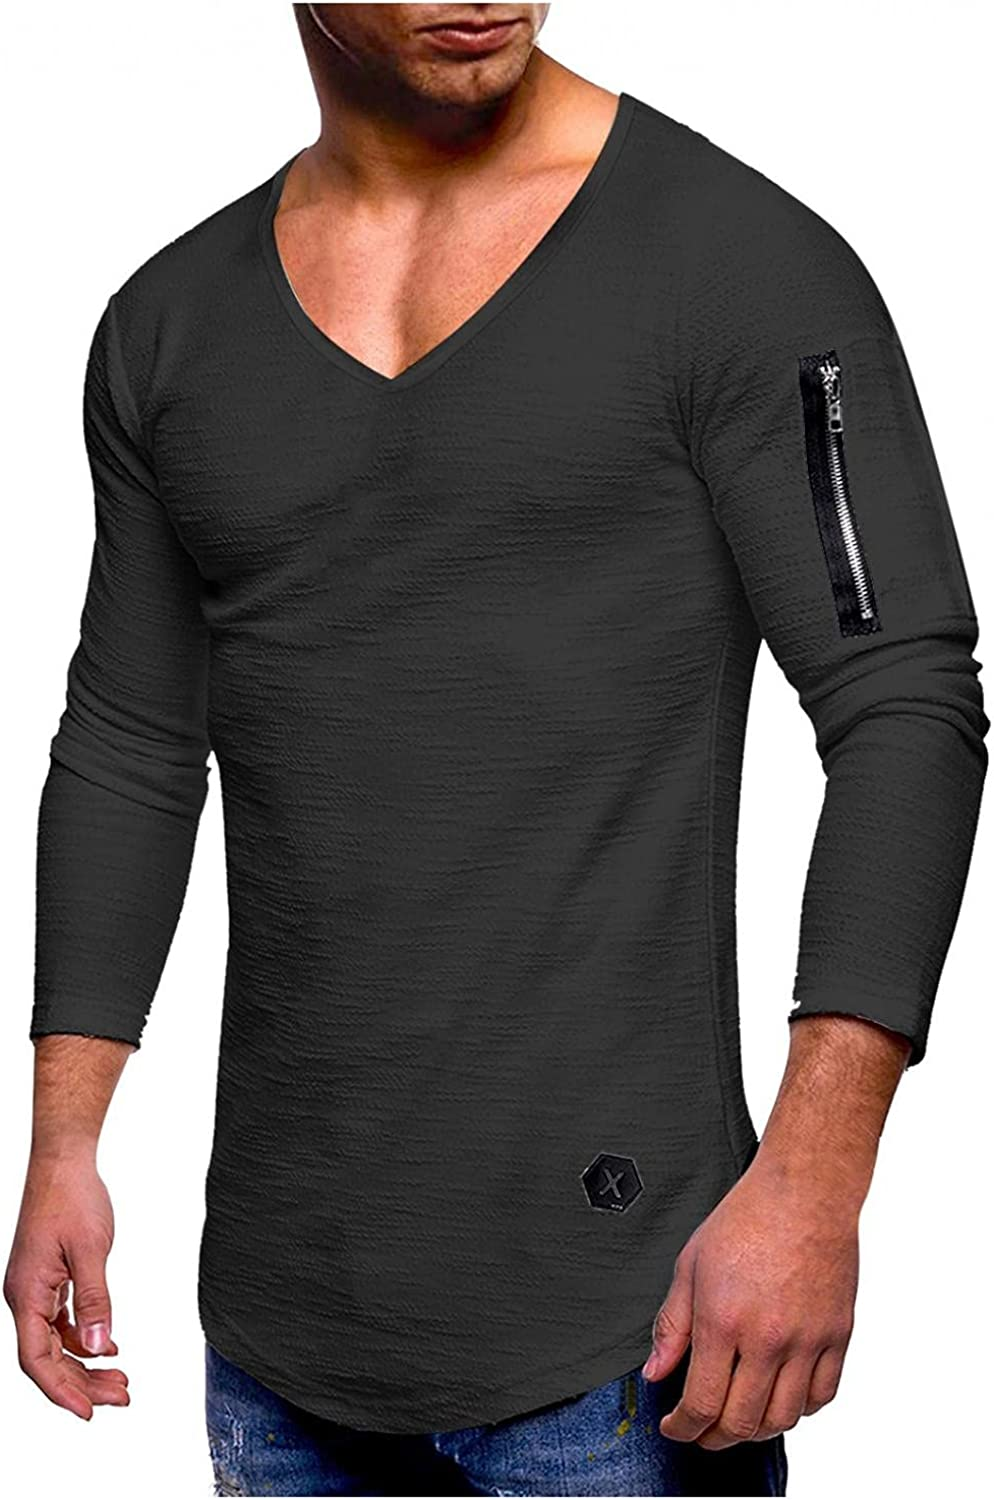 KEEYO Mens V-Neck Muscle T-Shirt Long Sleeve Athletic Bodybuilding Gym Tee Fashion Workout Hipster Shirts Casual Fall